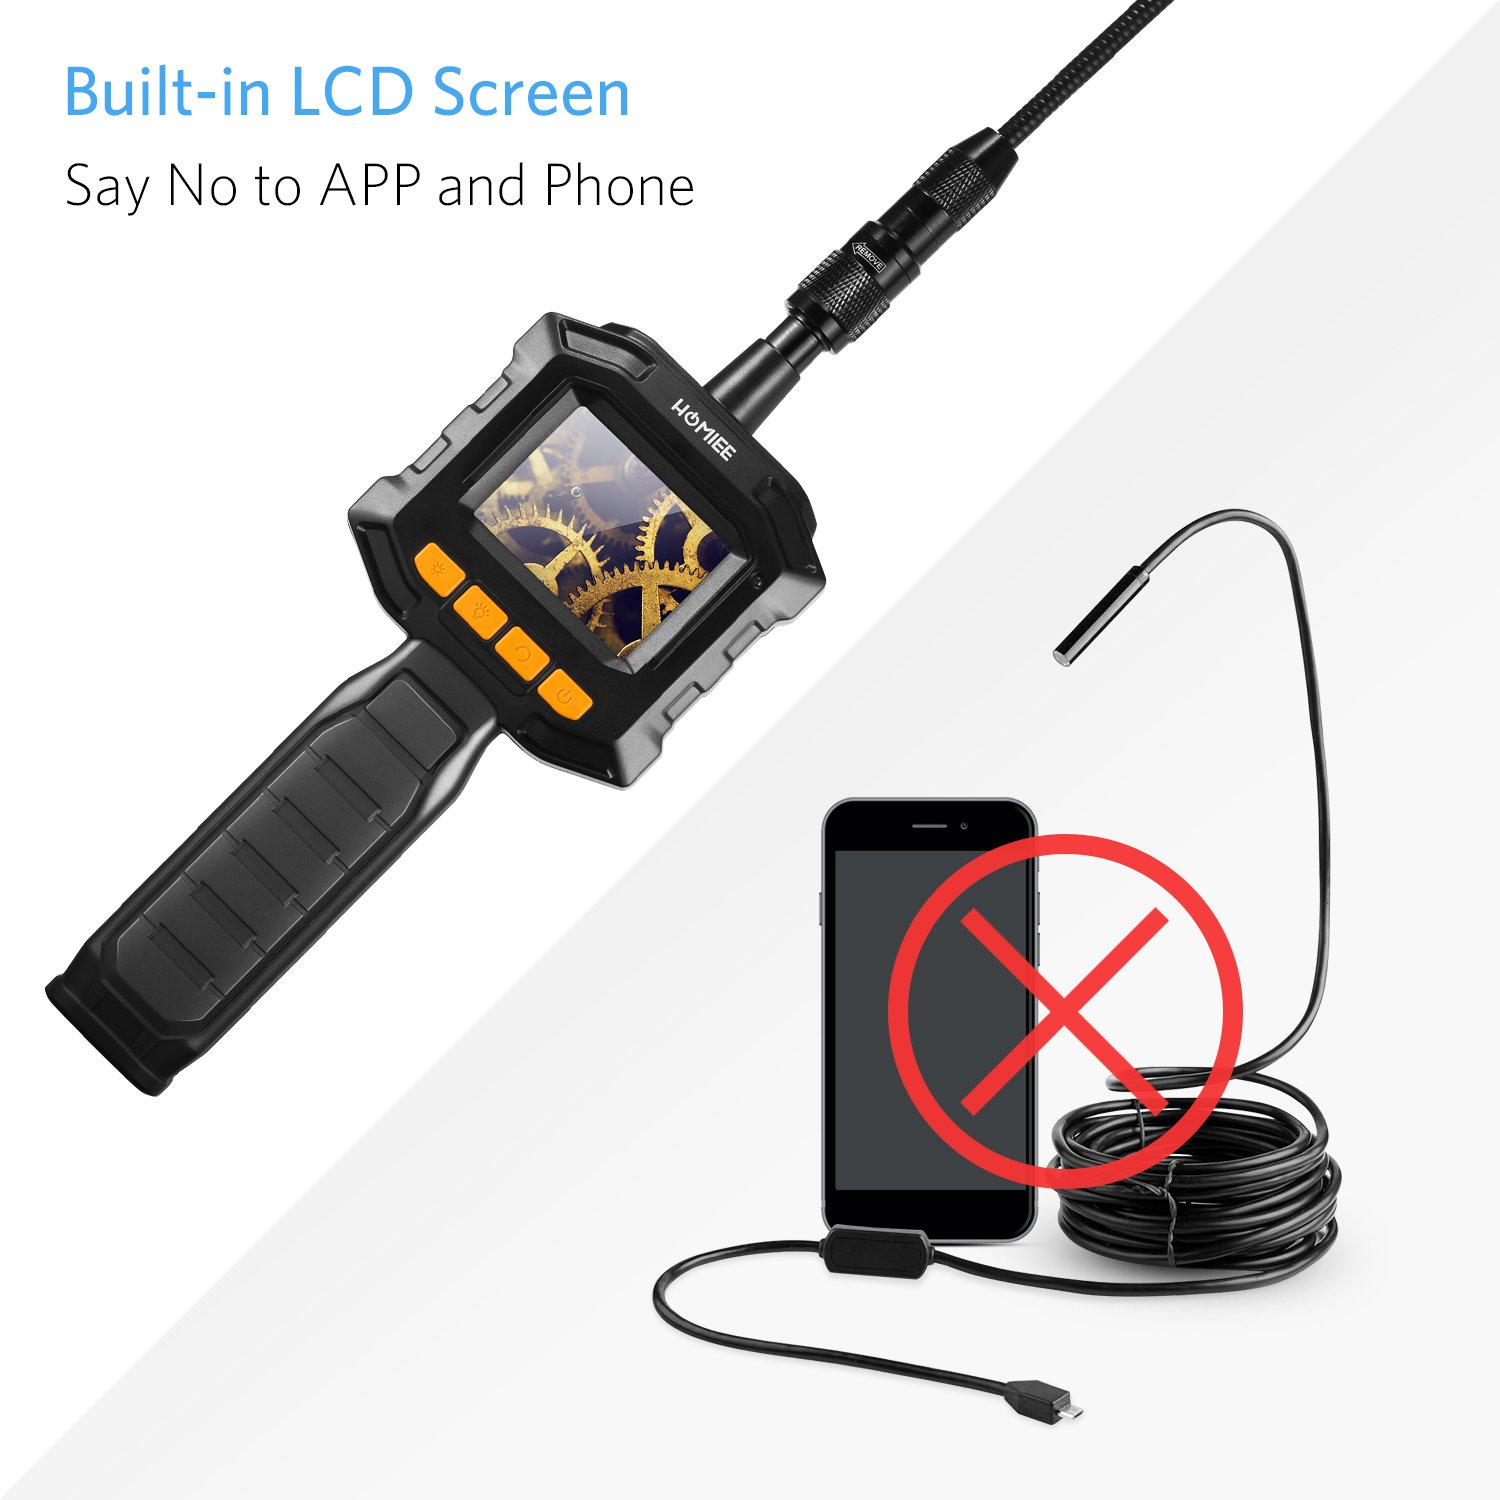 3.2 Ft IP67 Waterproof Tube Portable Toolbox Included HOMIEE Inspection Camera Endoscope with 2.3 Inch Color LCD Screen Semi-Rigid Snake Camera Kit with 4 LED Lights and 8 Brightness Level